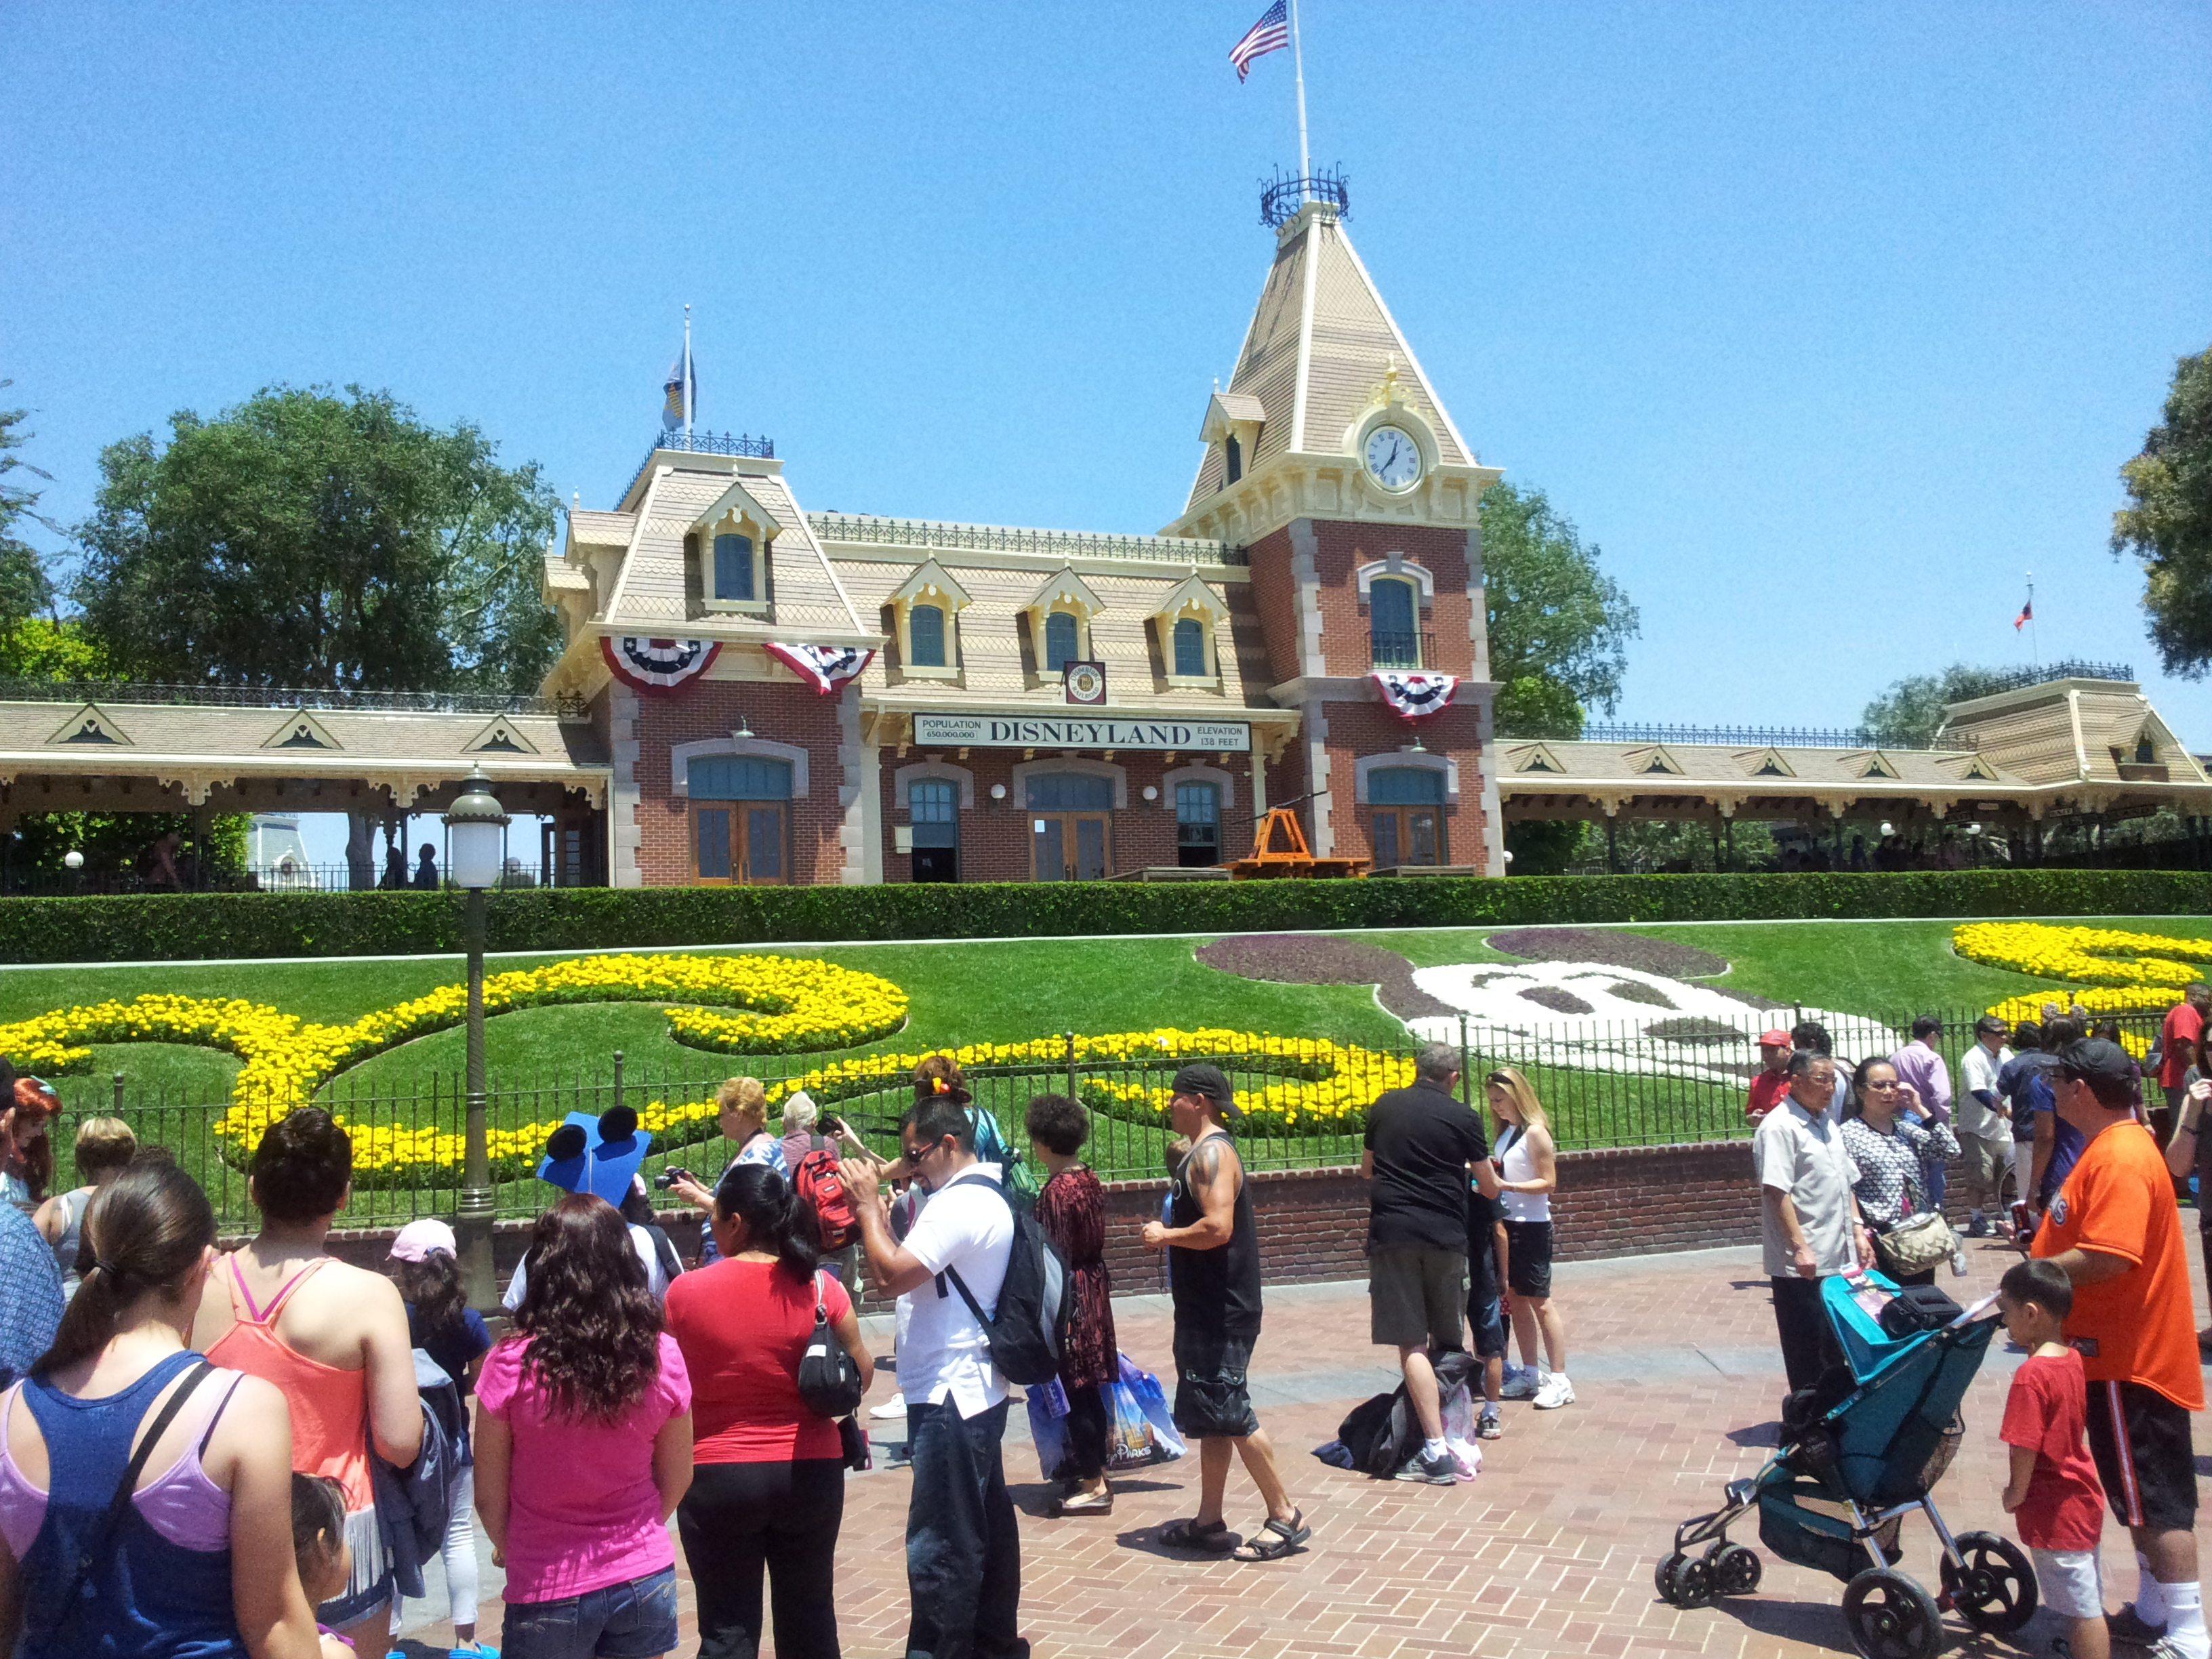 Disneyland California Entrance